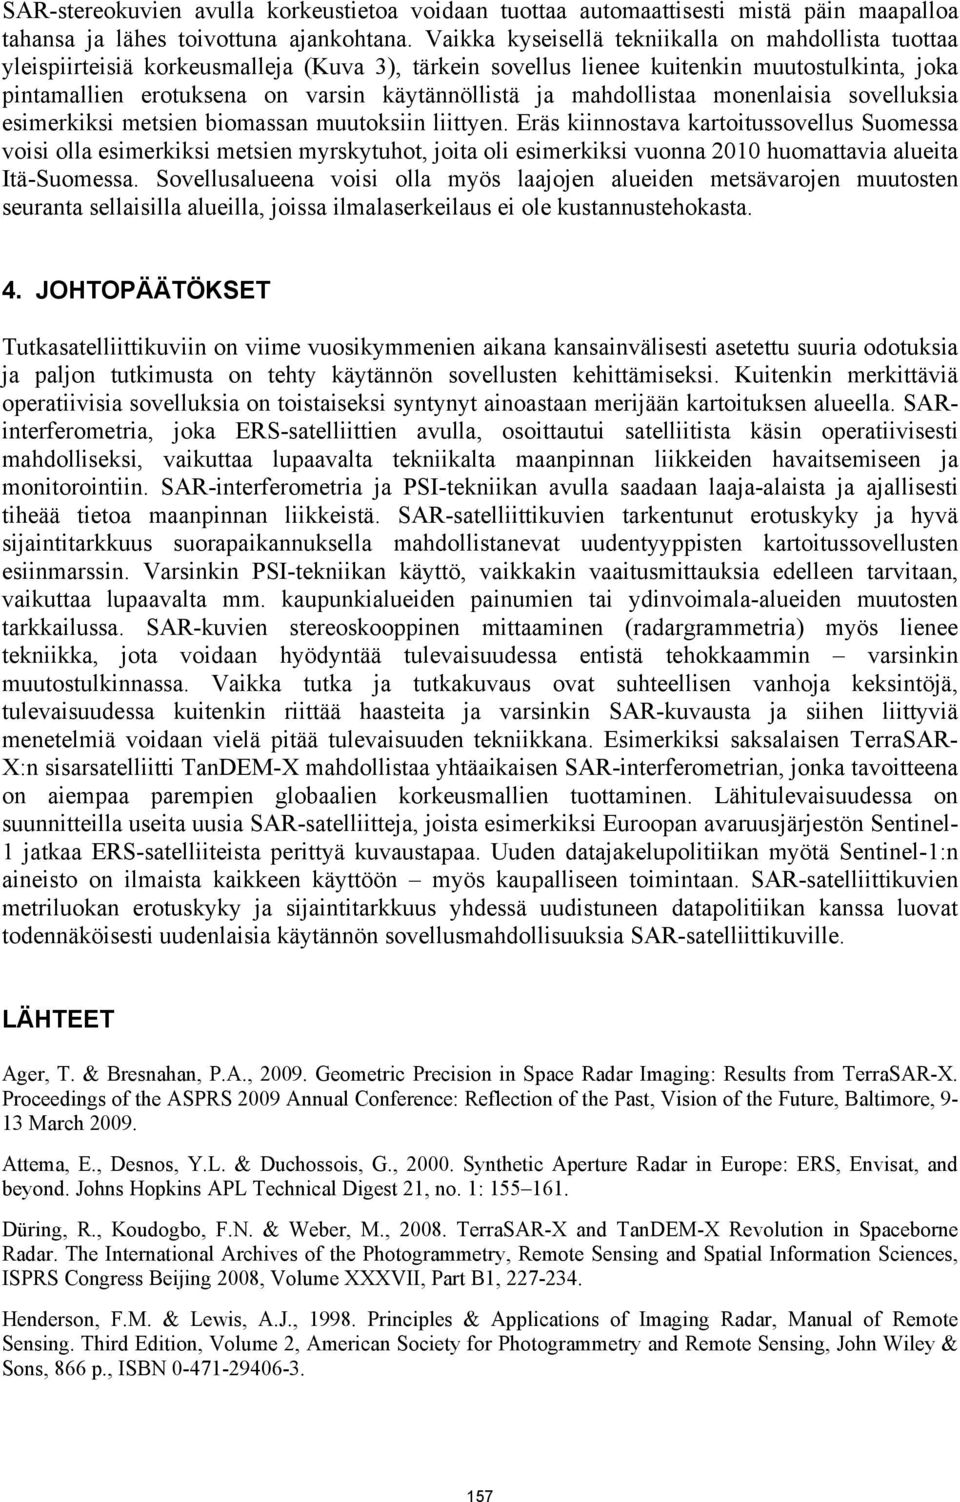 , 2006. Compaction of C-Band Synthetic Aperture Radar Based Sea Ice Information for Navigation in the Baltic Sea. Doctoral thesis, Helsinki University of Technology, http://lib.tkk.